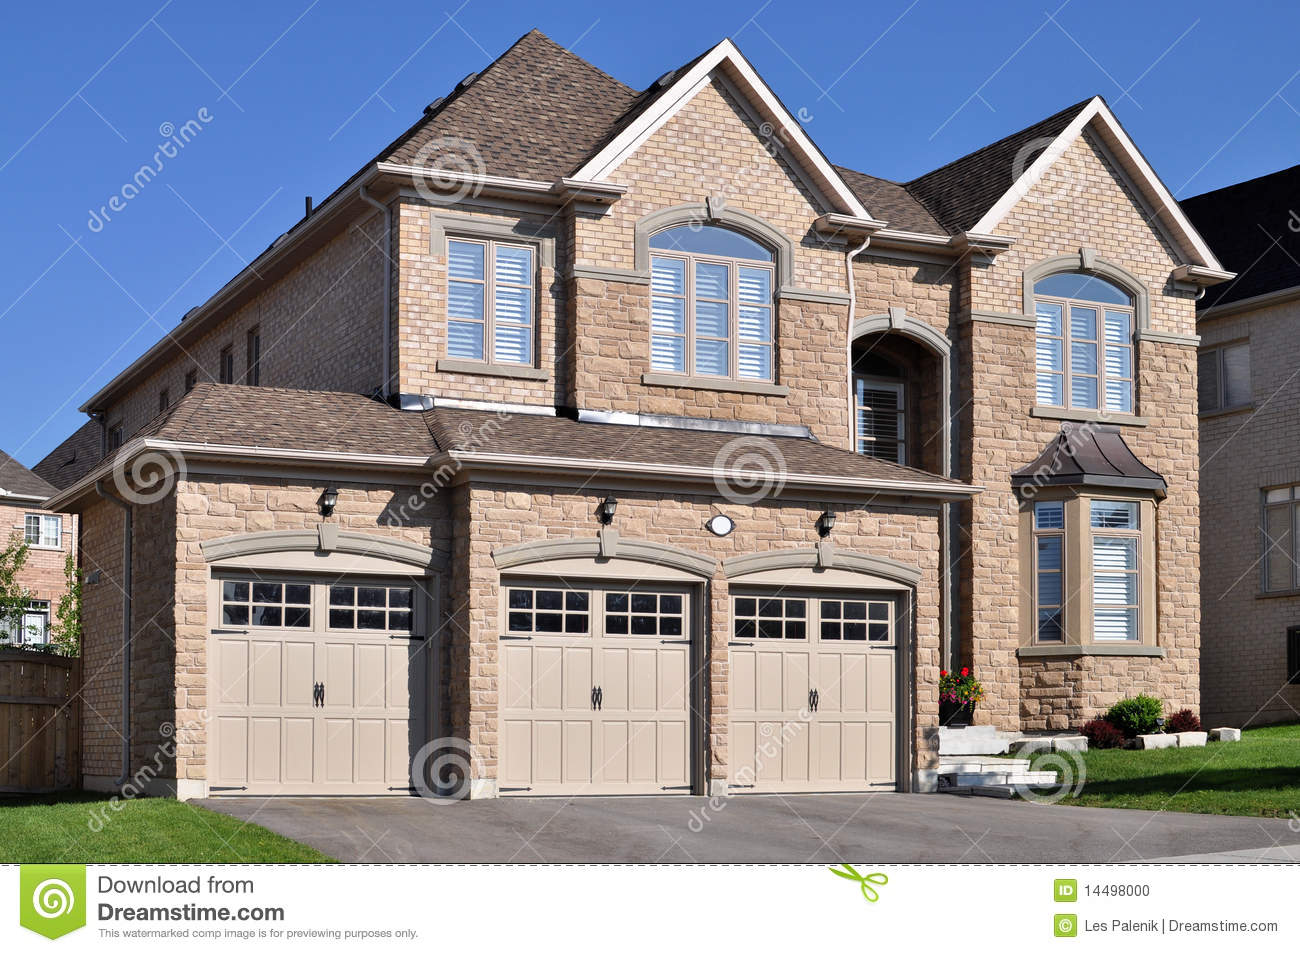 New home with a triple garage